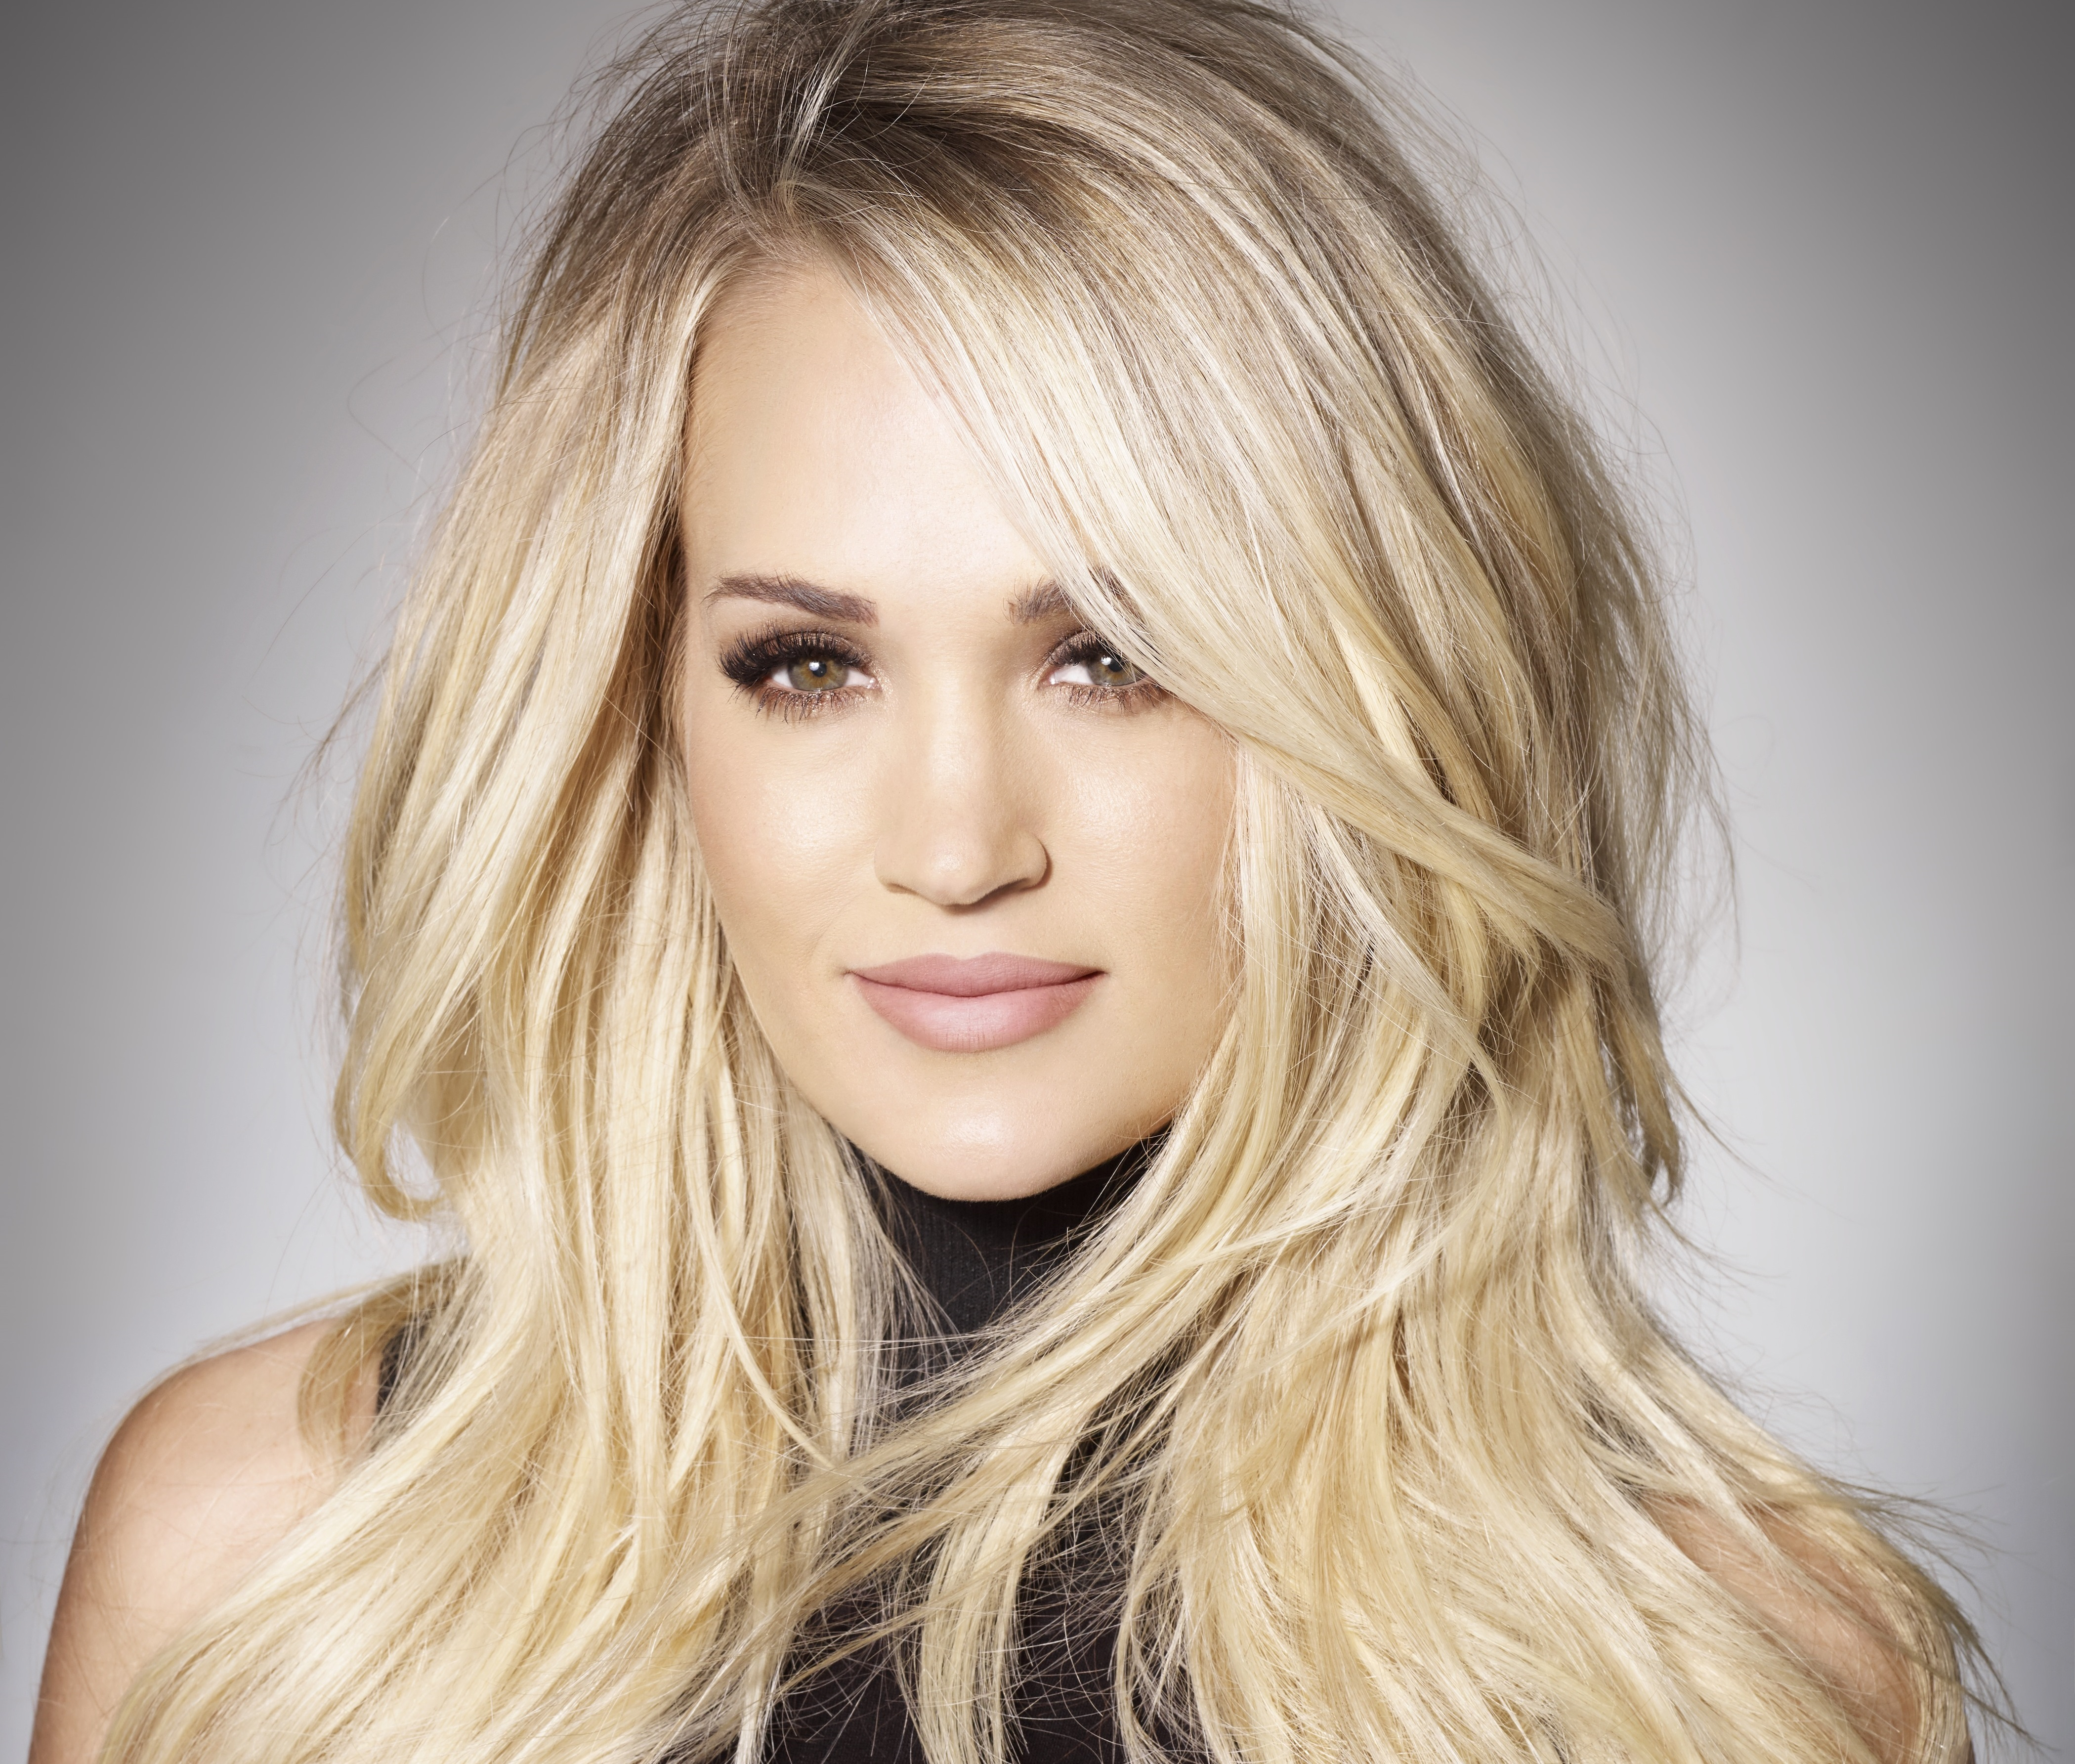 Stunning Carrie Underwood To Return To As Mentor Carrie Underwood To Return To As Mentor Sounds Carrie Underwood No Makeup Carrie Underwood No Makeup S nice food Carrie Underwood No Makeup